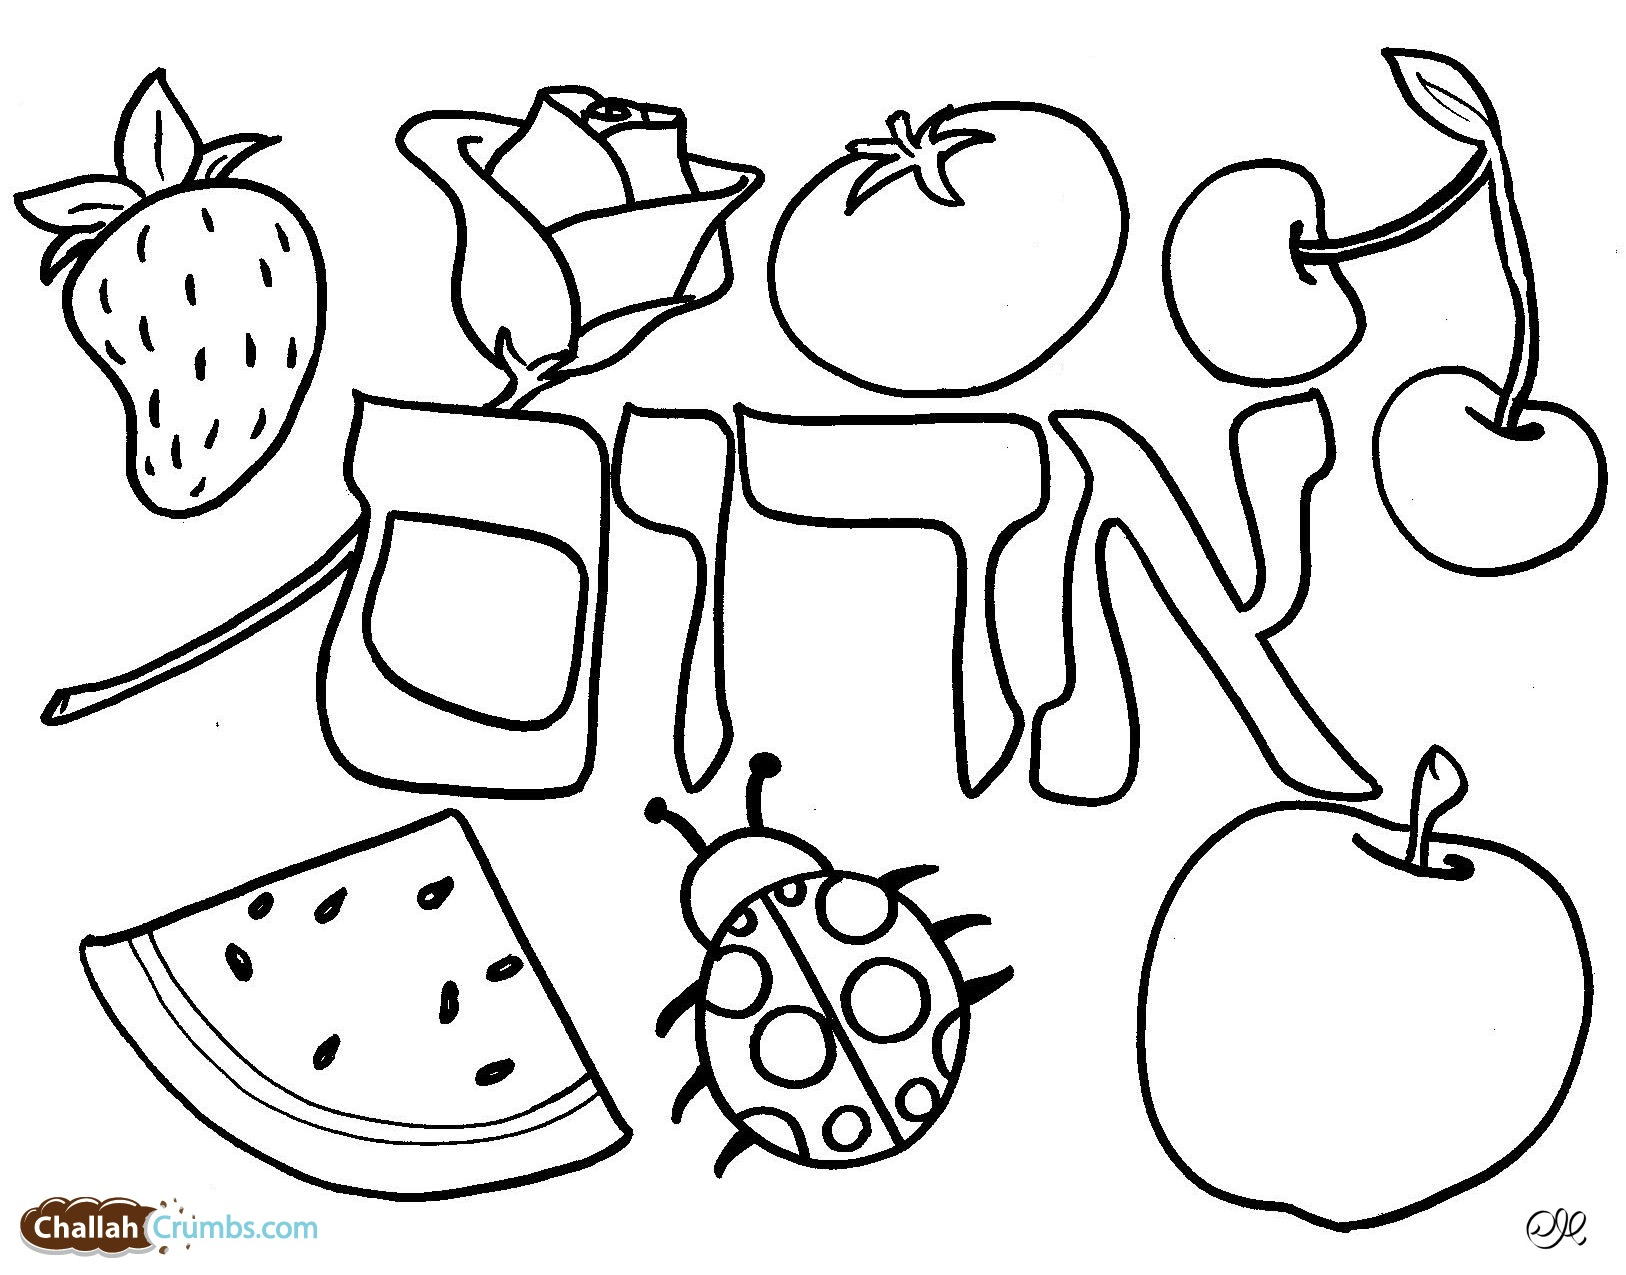 challah coloring pages - photo#16